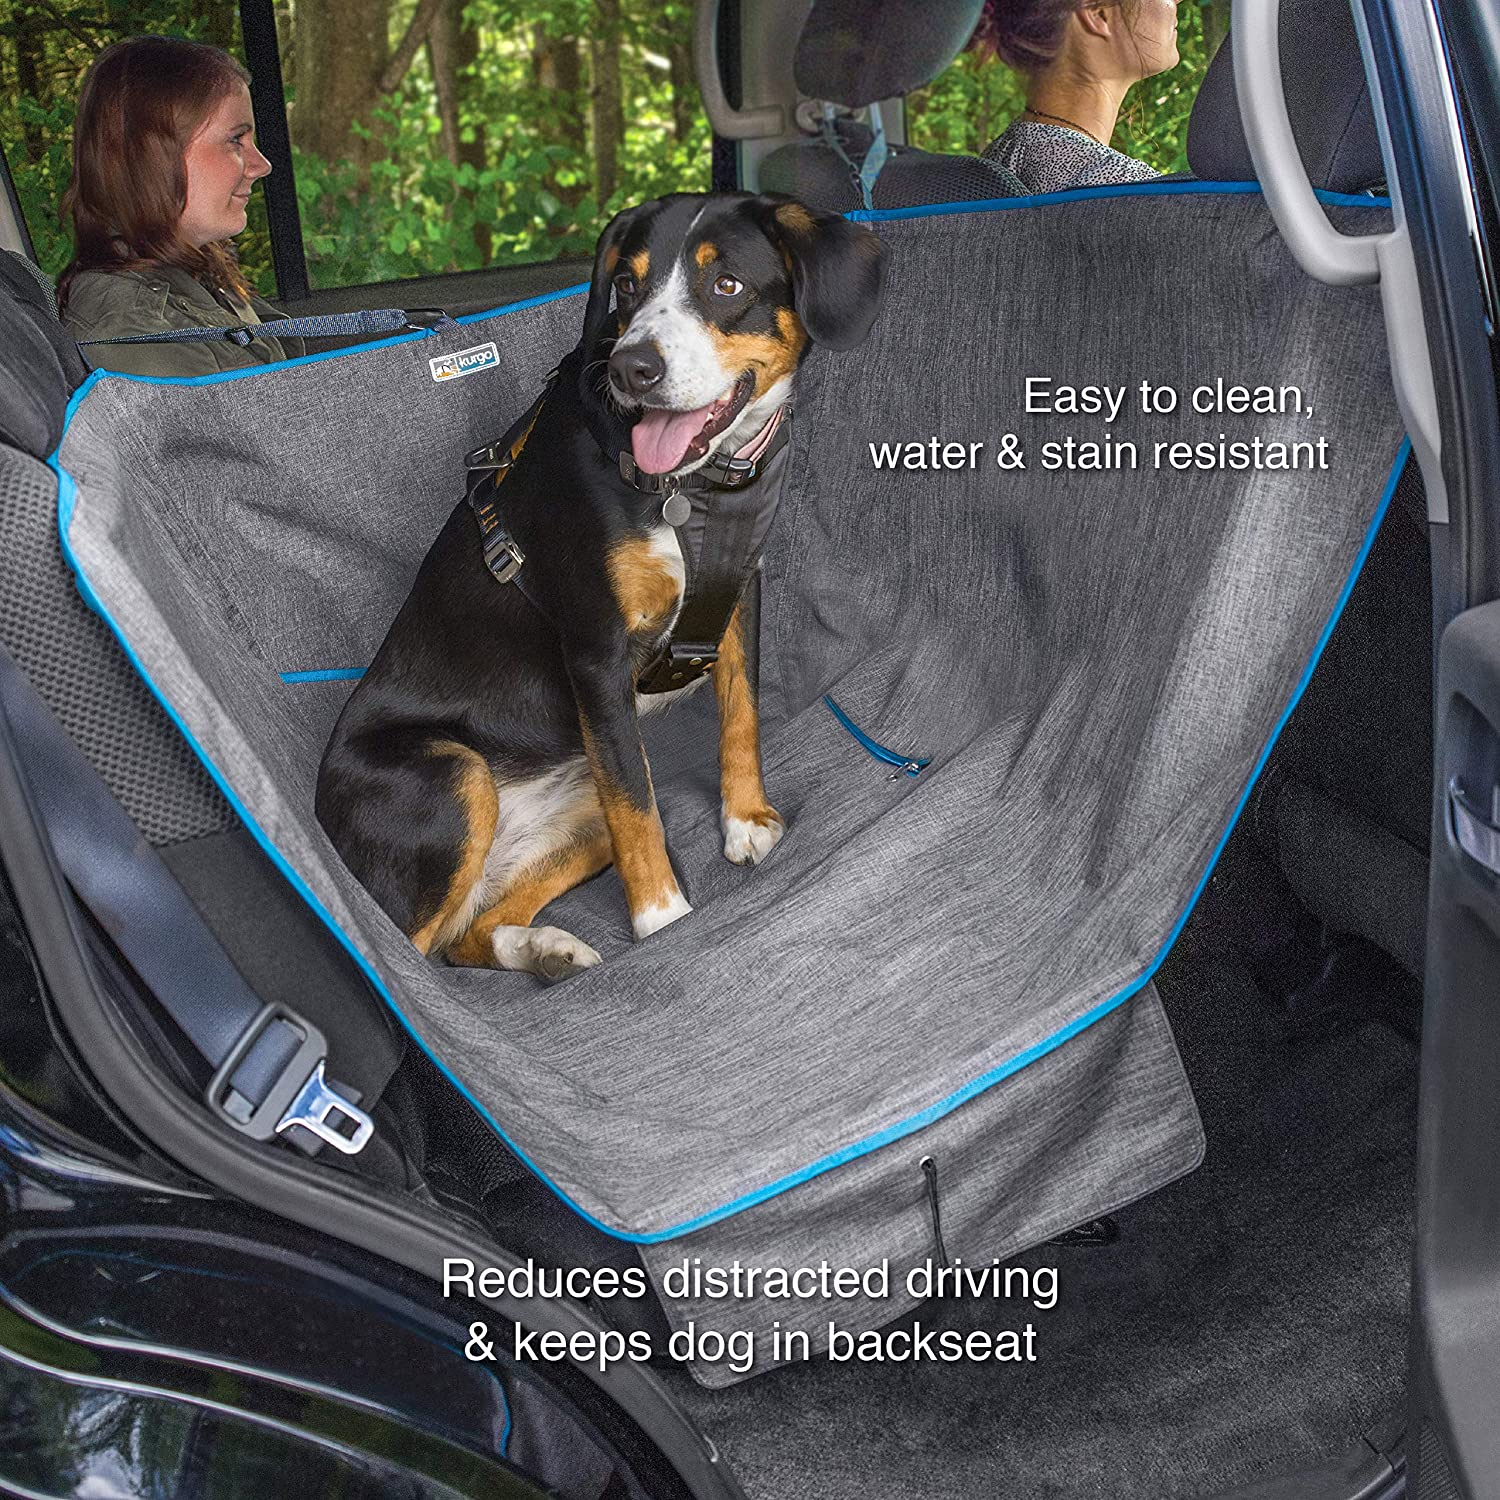 Kurgo Dog Hammock Car Seat Cover for Pets Pet Seat Cover Car Hammocks for Dogs Water-Resistant Wander Heather Journey Half Coast to Coast Cars, Trucks, SUVs Black Grey Khaki